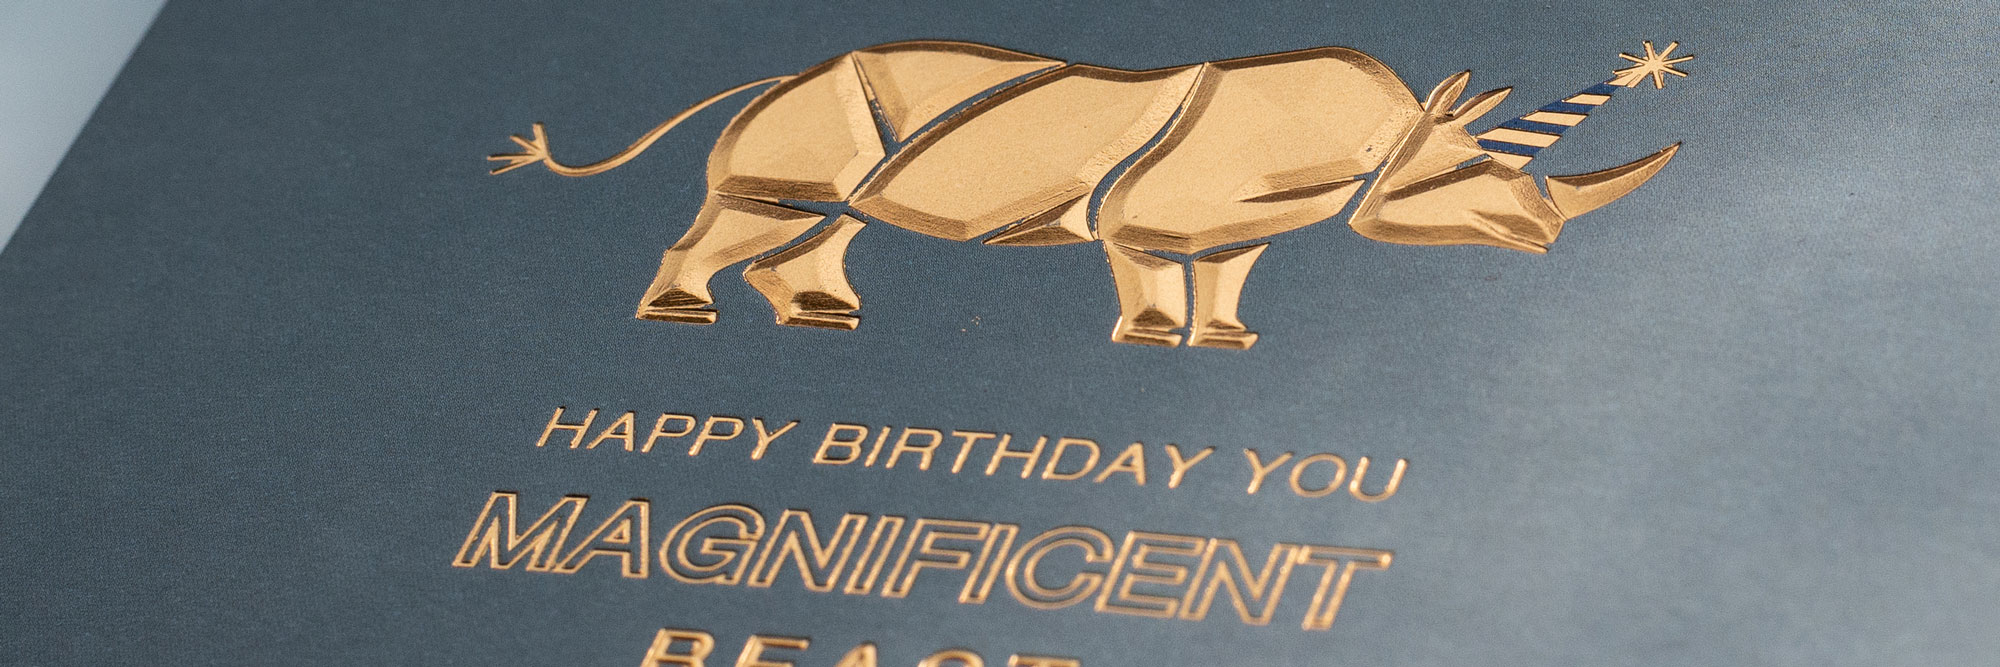 Loxleys Our Commitment To Innovative Greeting Card Production